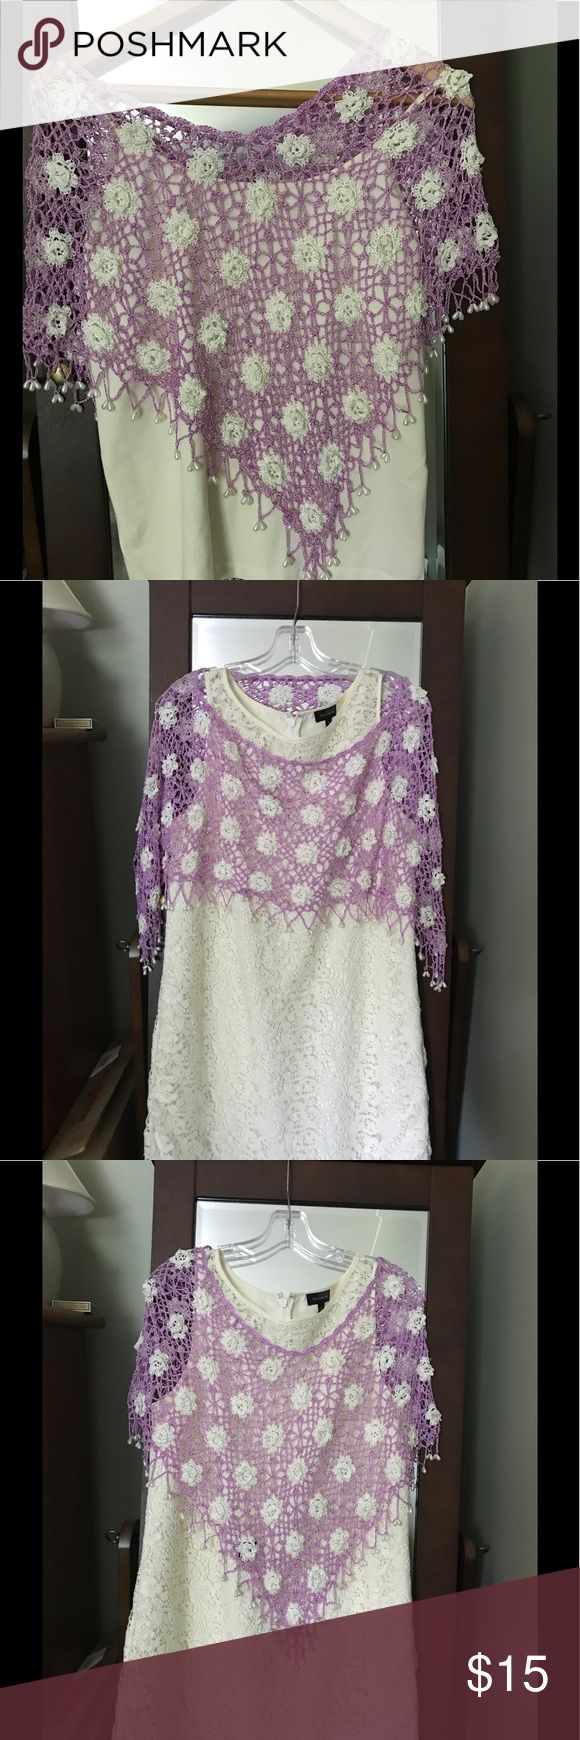 Crocheted poncho Lavender and cream poncho with beading.  Great to dress up a simple dress or throw over a cami for a night out. Other